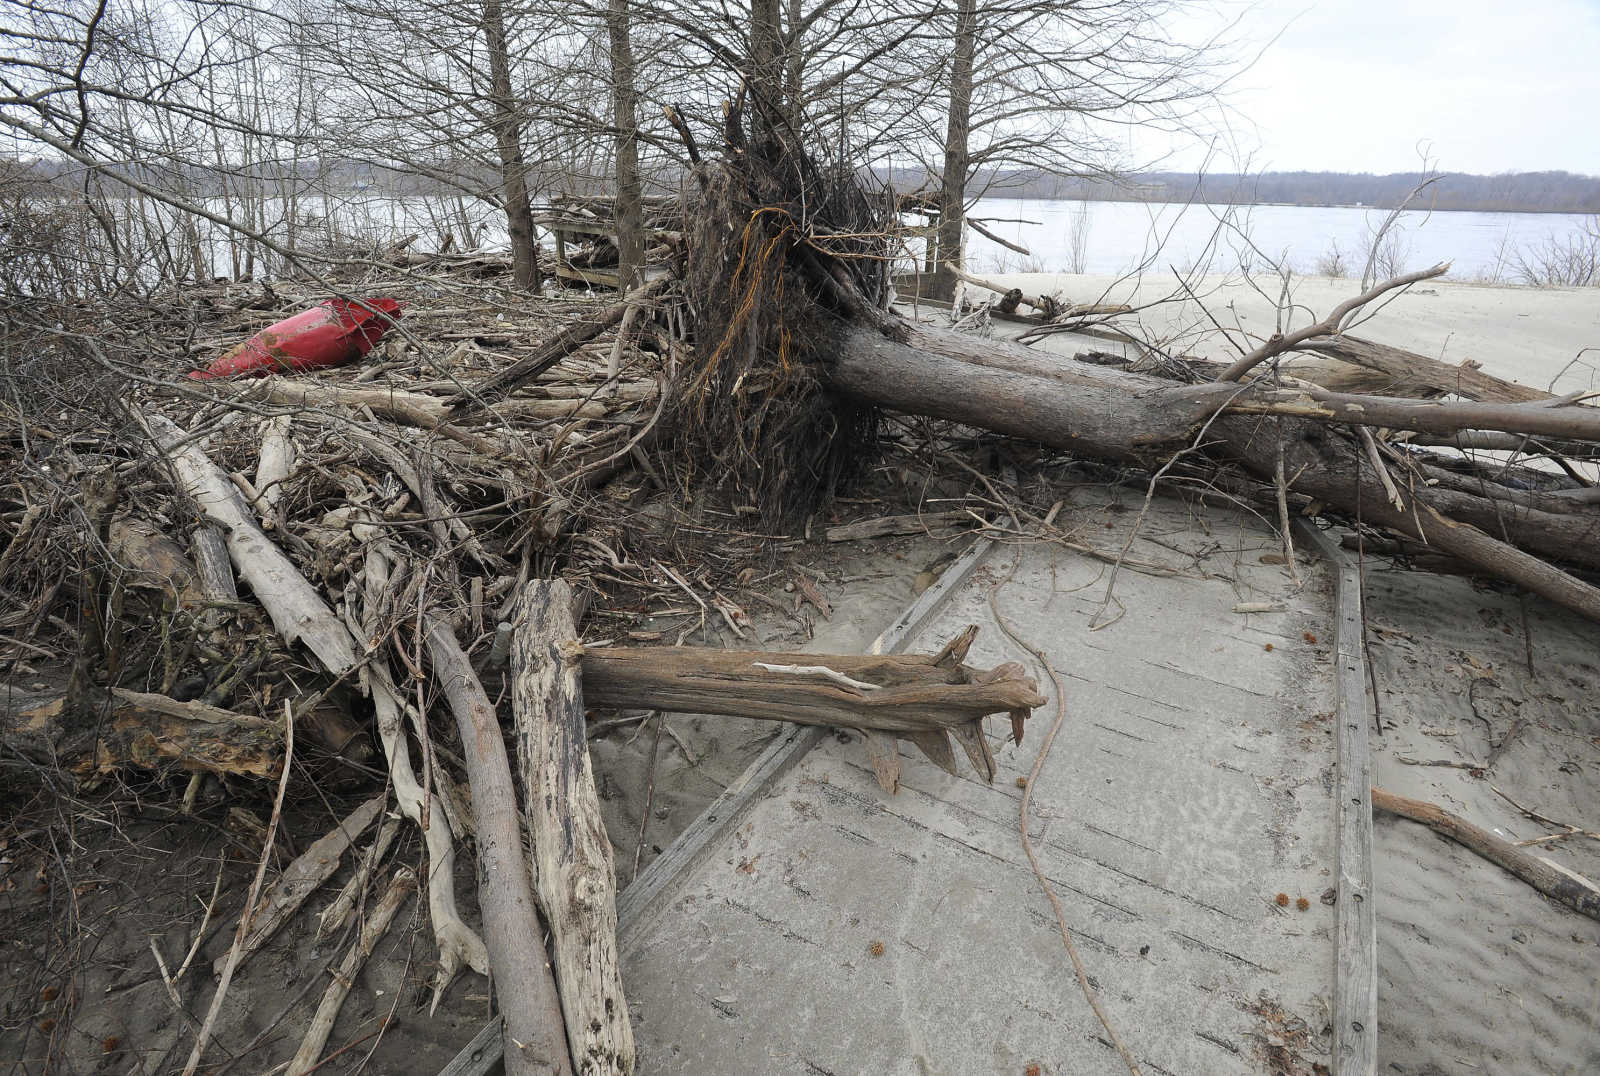 Illinois alexander county thebes - The Flooded Mississippi River Brought Various Debris To The Boardwalk North Of Thebes Illinois As Seen Jan 16 2016